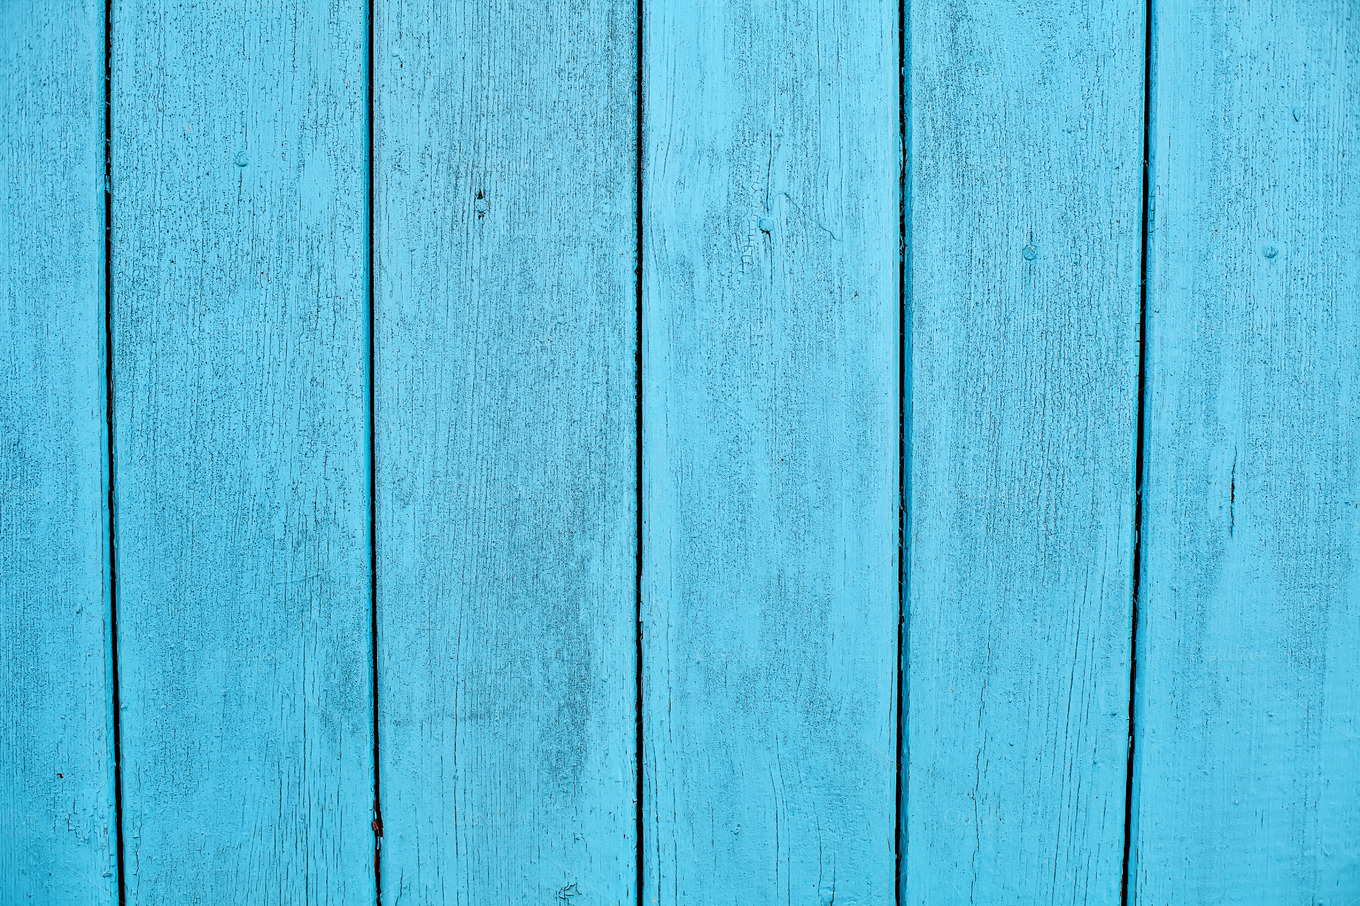 blue old wooden background texture d abstract photos on creative